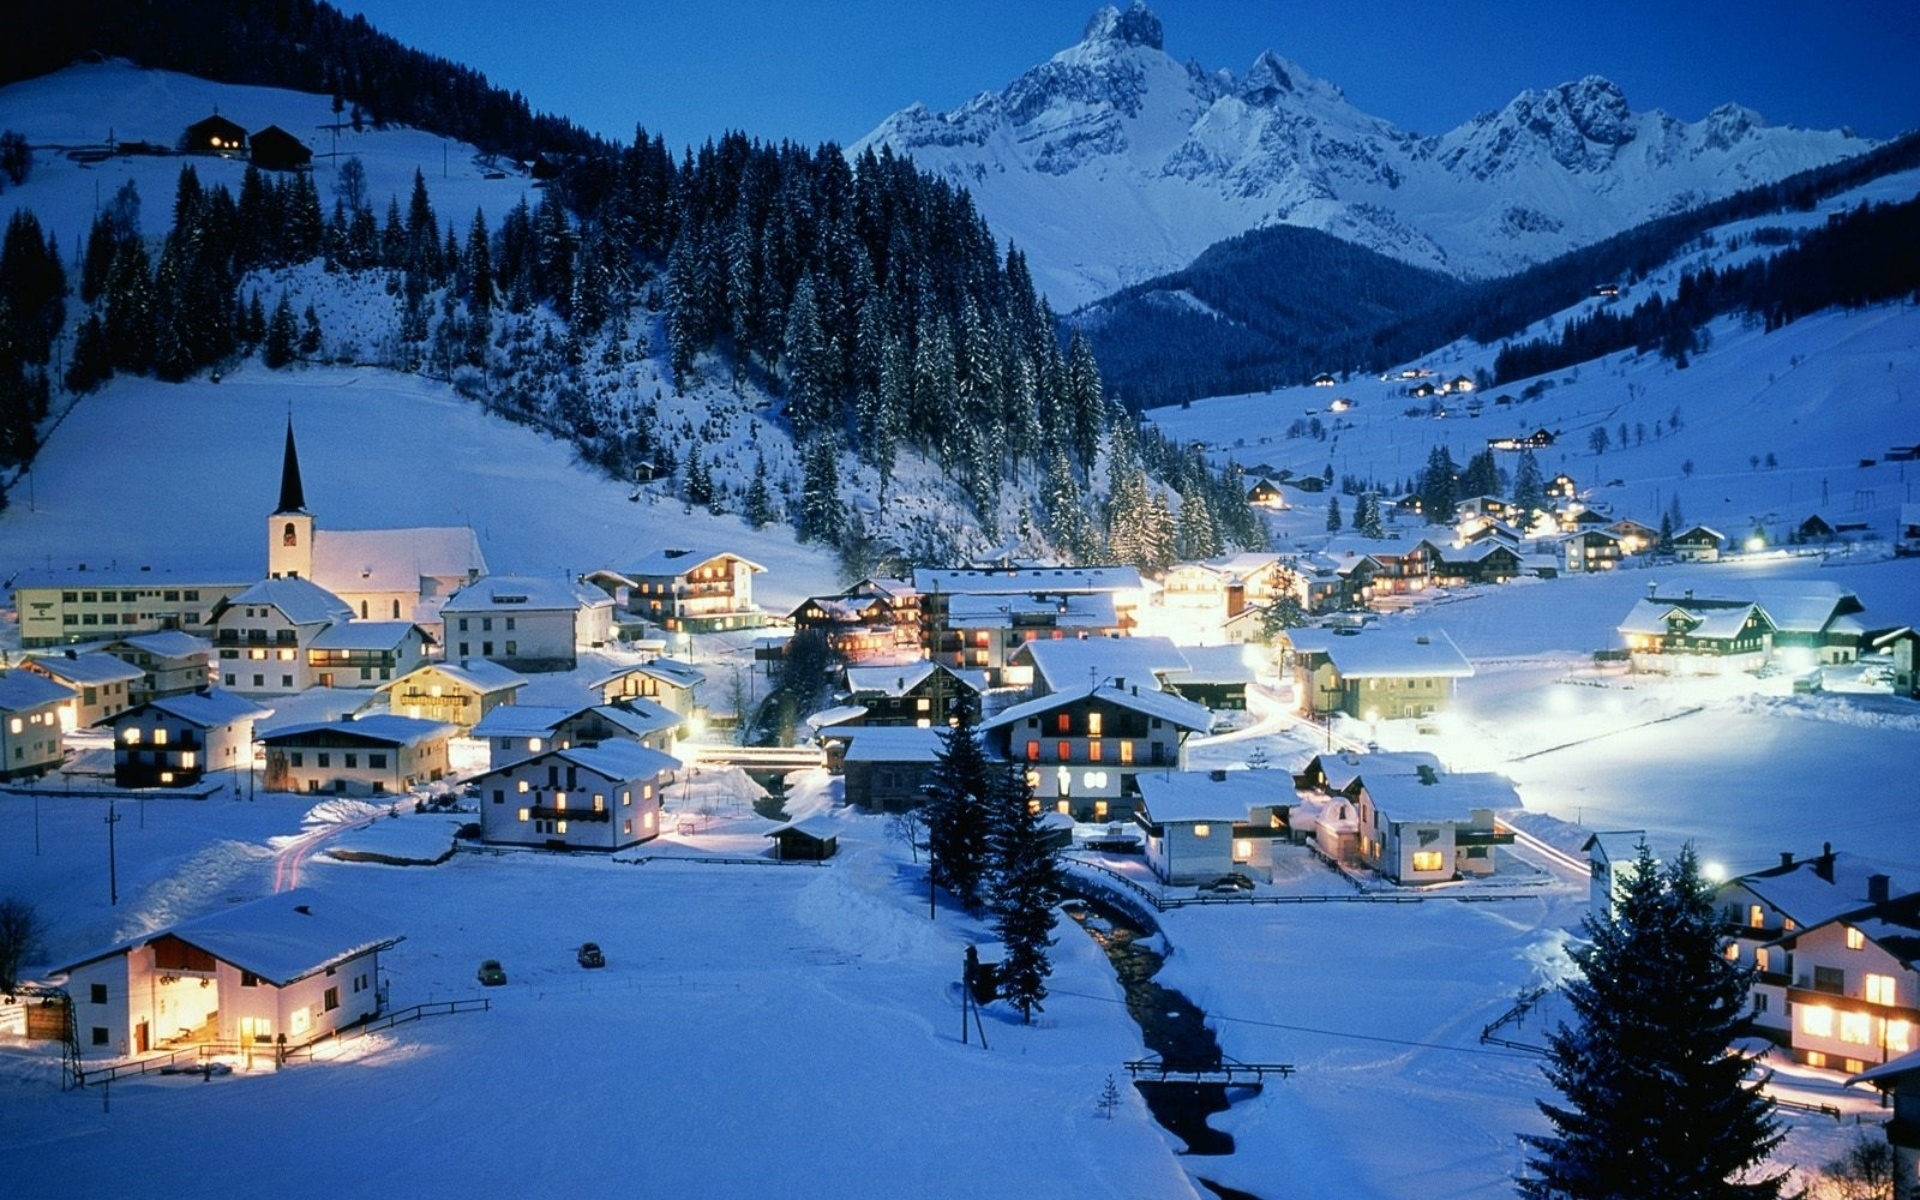 #Andorra - Cheap Holidays For A #Ski #Vacation #travel #FrizeMedia #tourism